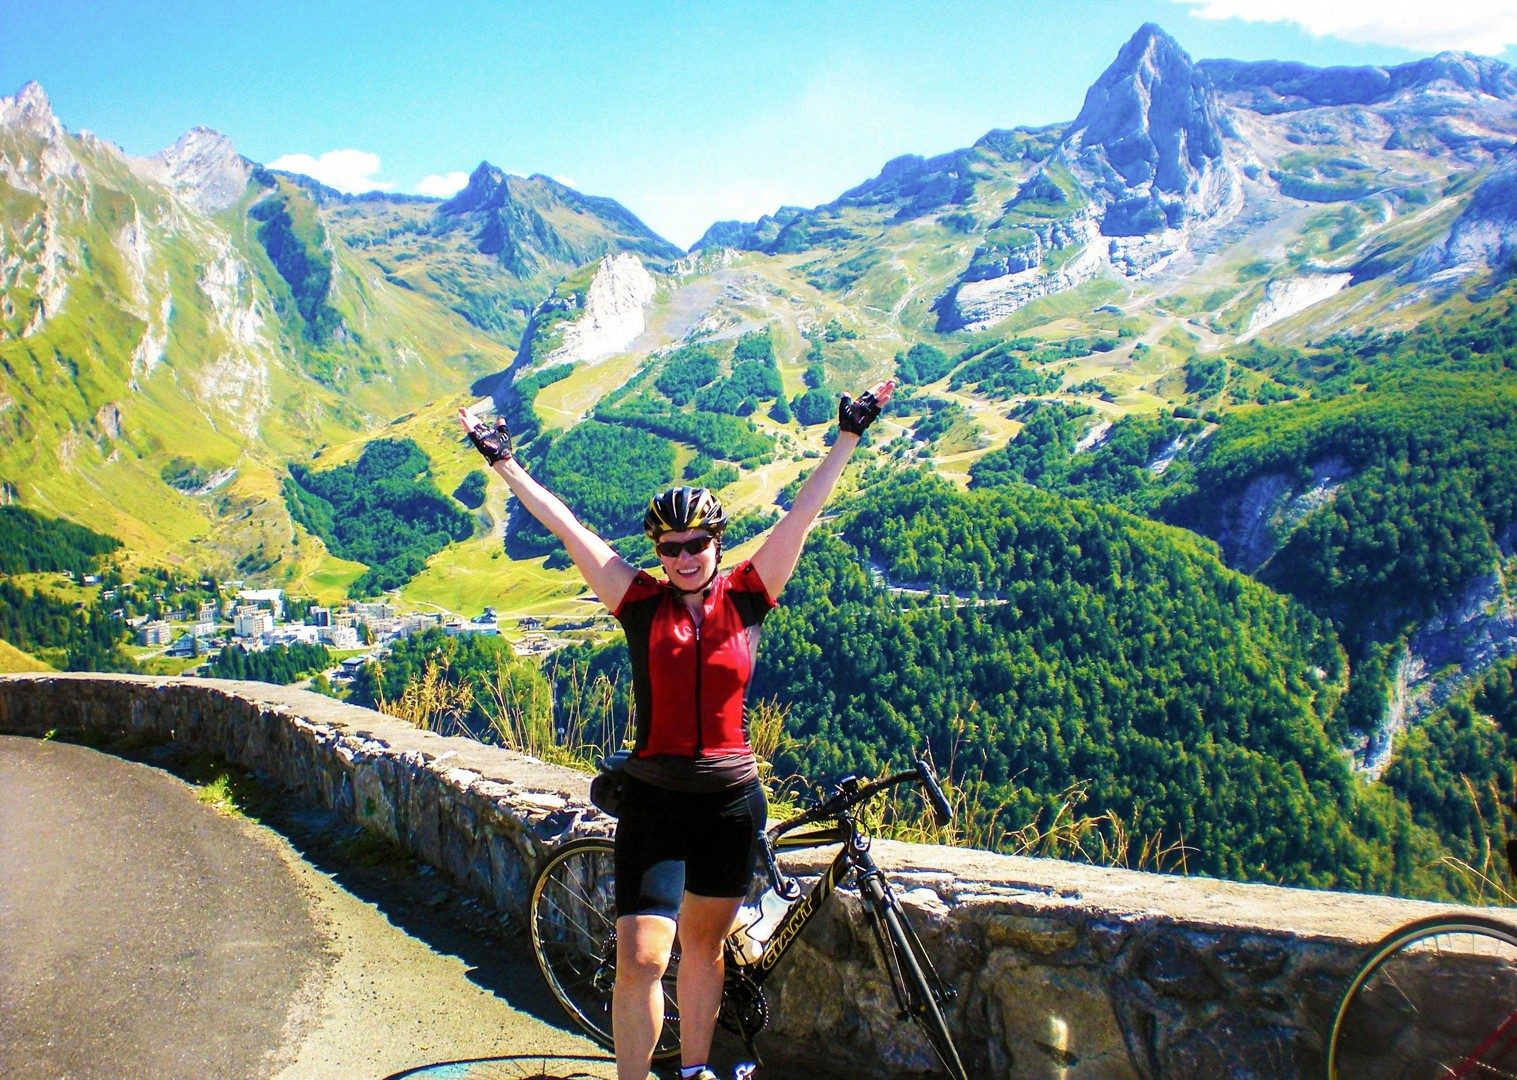 france-cycling-holiday-road-trip-saddle-skedaddle.jpg - France - Pyrenees Fitness Week (Grade 3-4) - Guided Road Cycling Holiday - Road Cycling